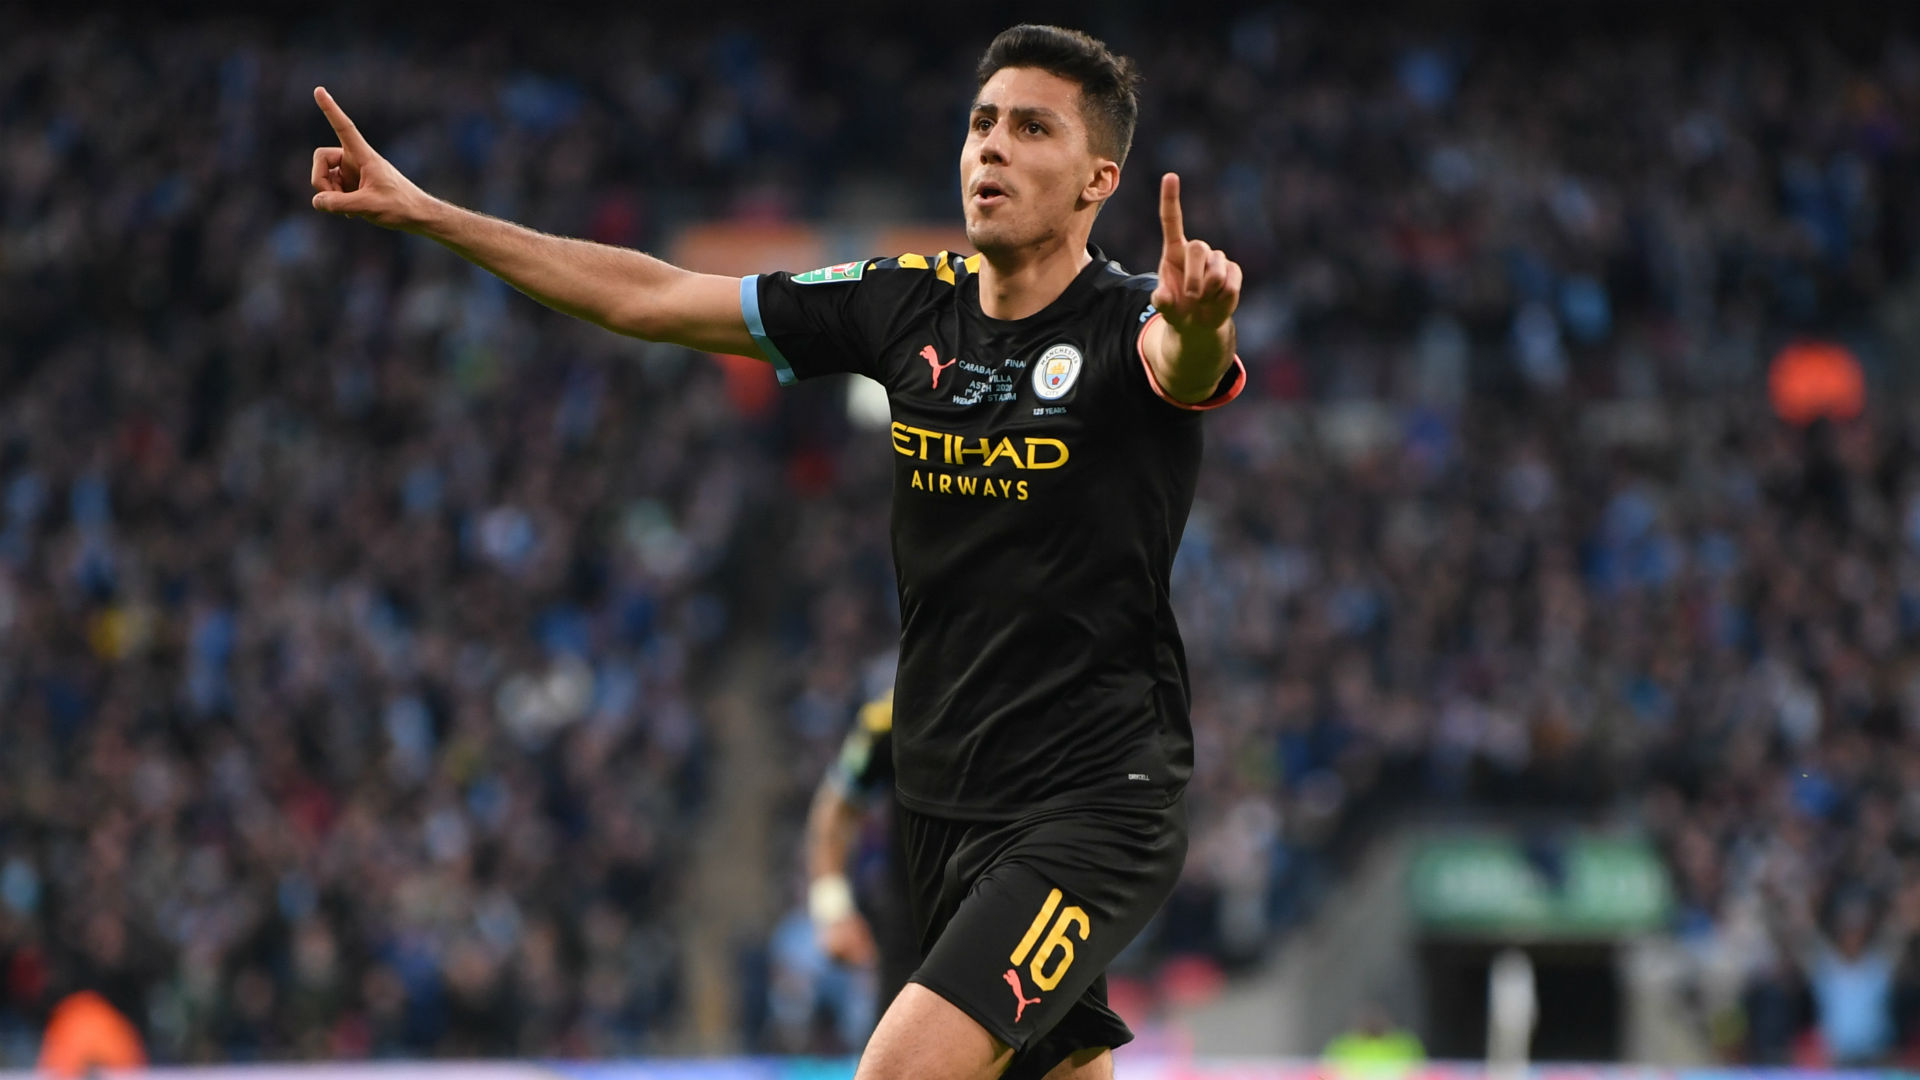 Man City suffered in EFL Cup triumph – Rodri